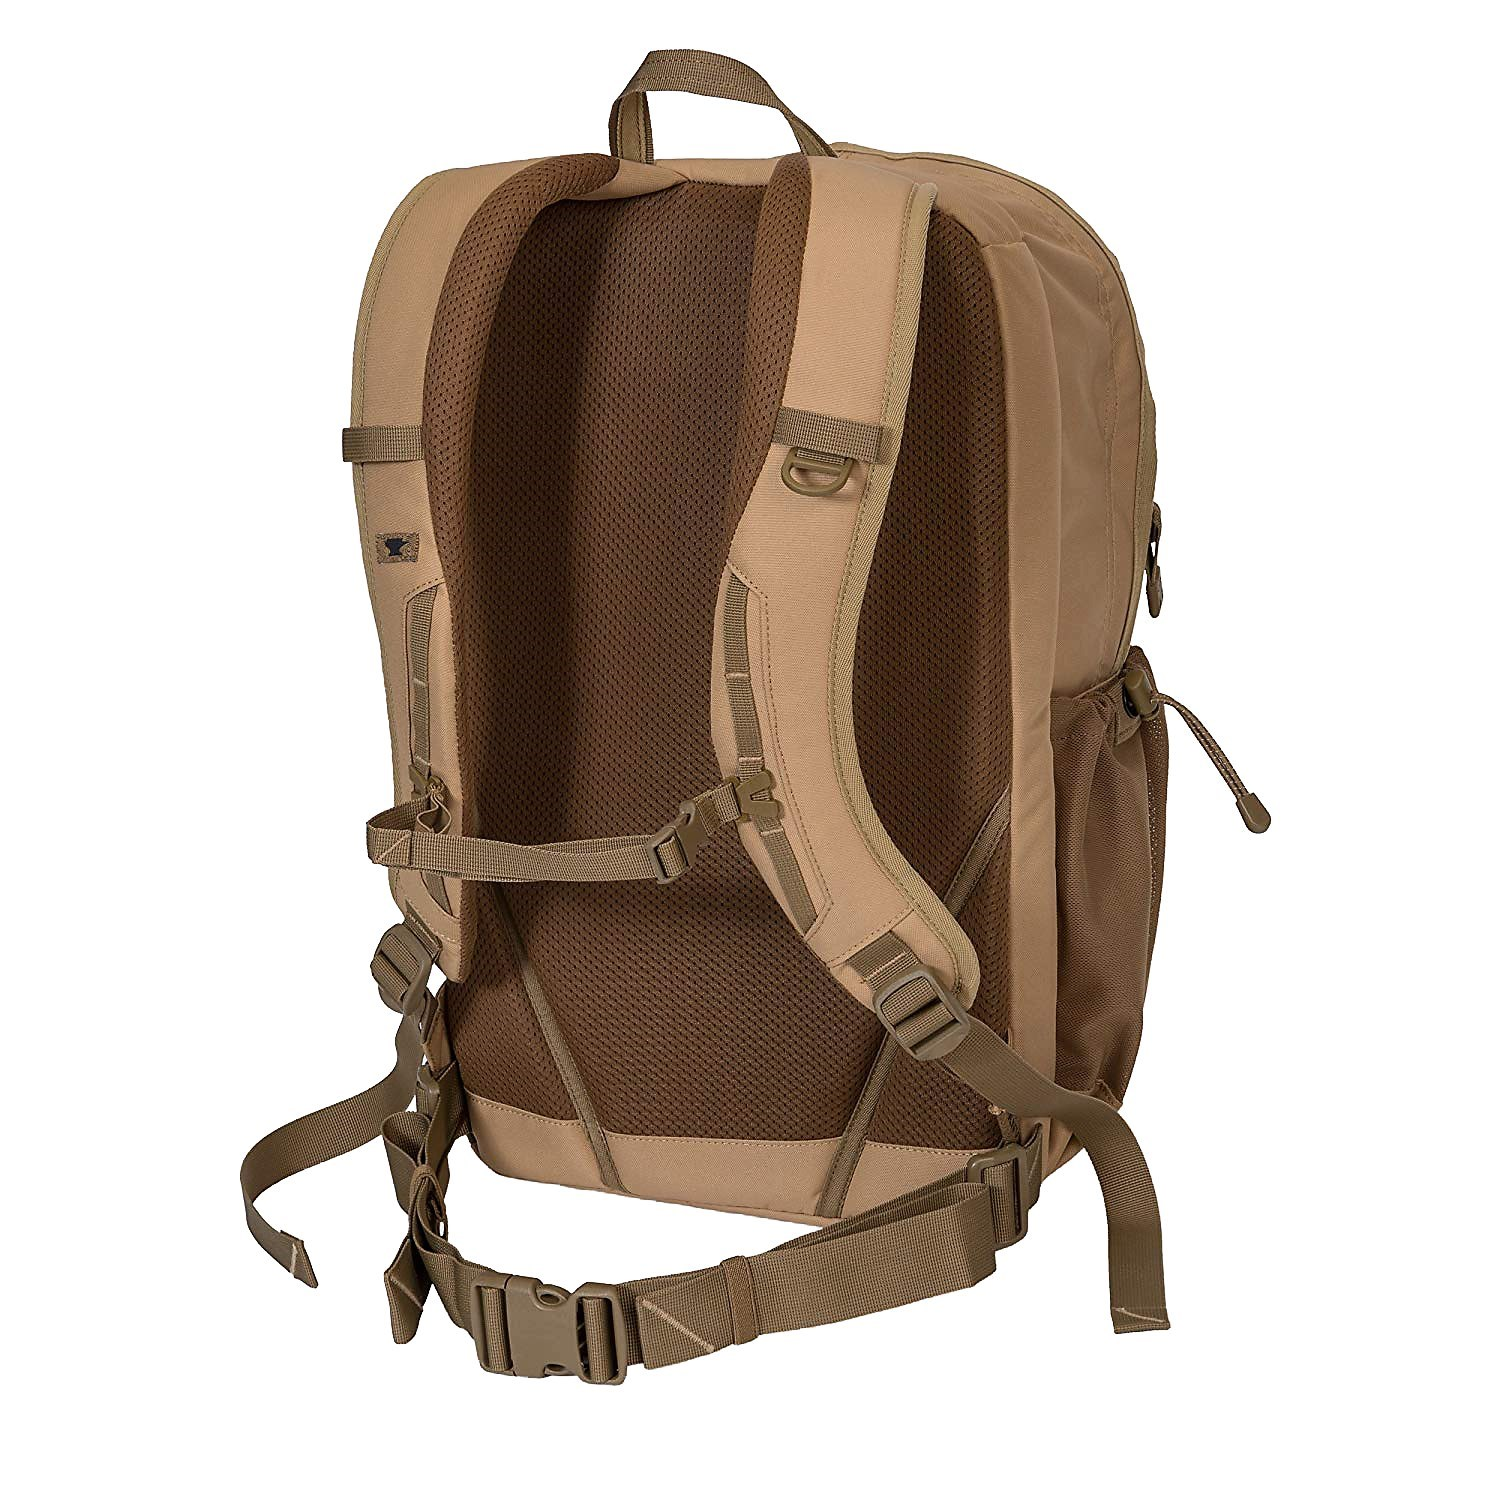 b28c6ce8d6d Mountainsmith Divide Backpack - Save 37%